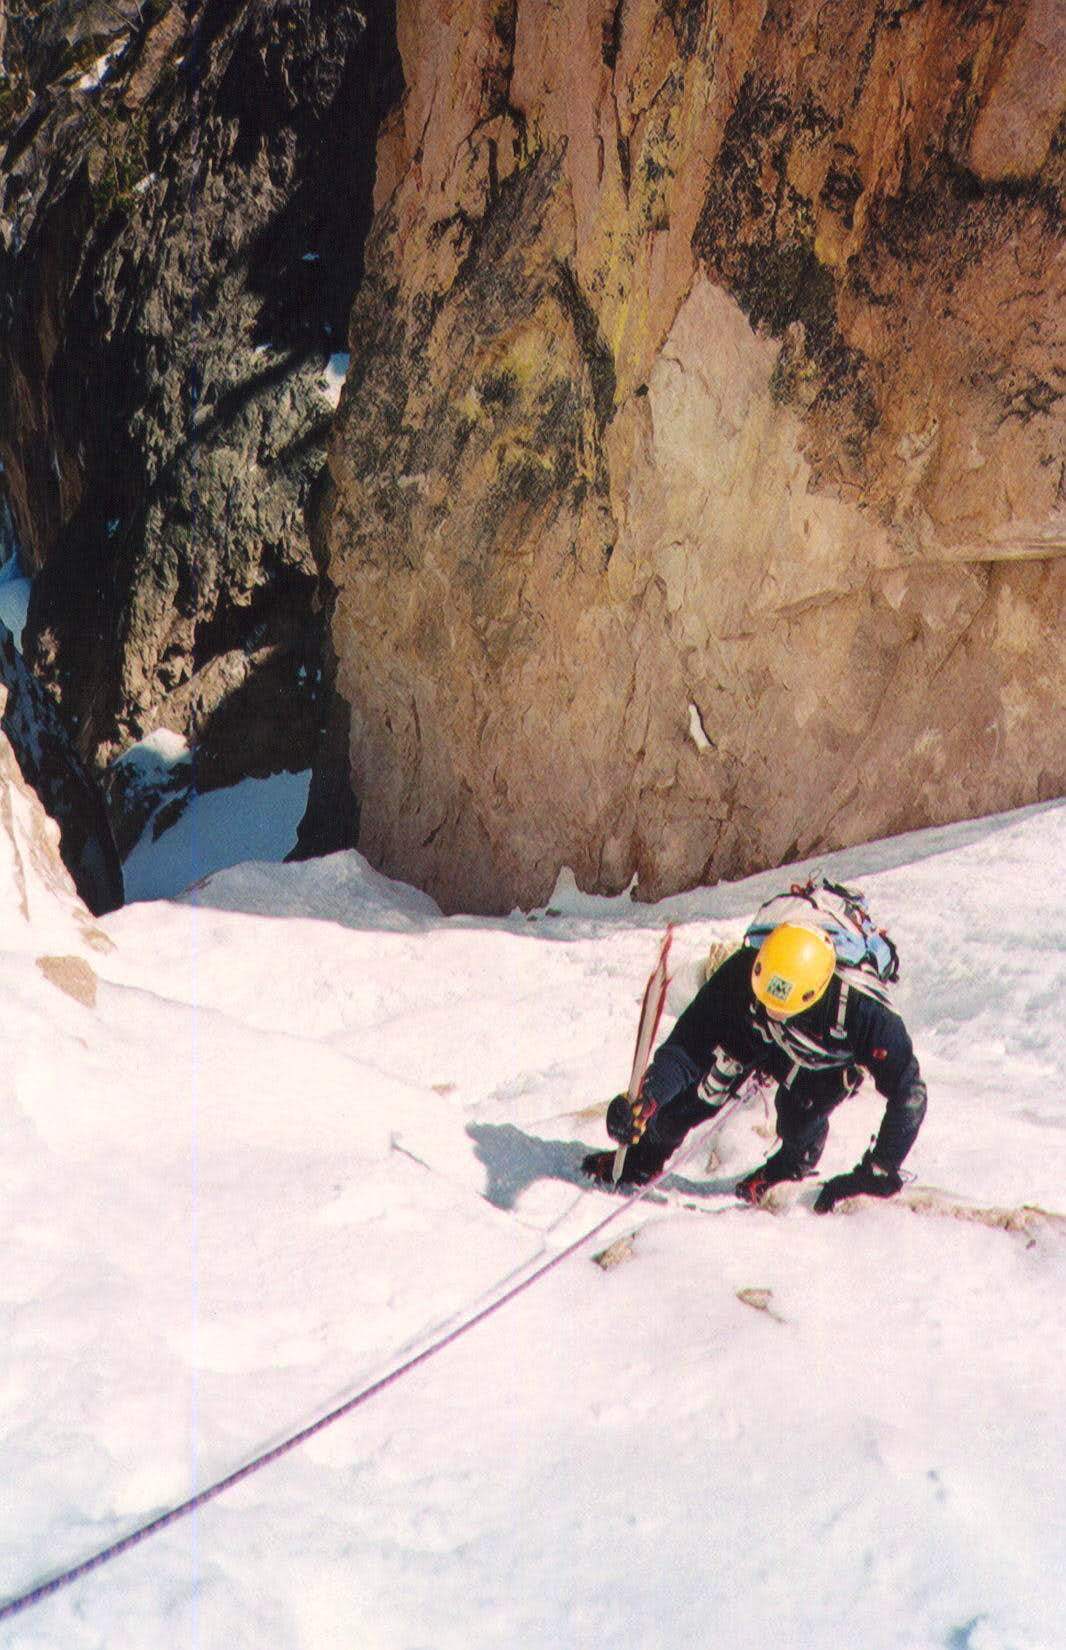 Chockstone Couloir